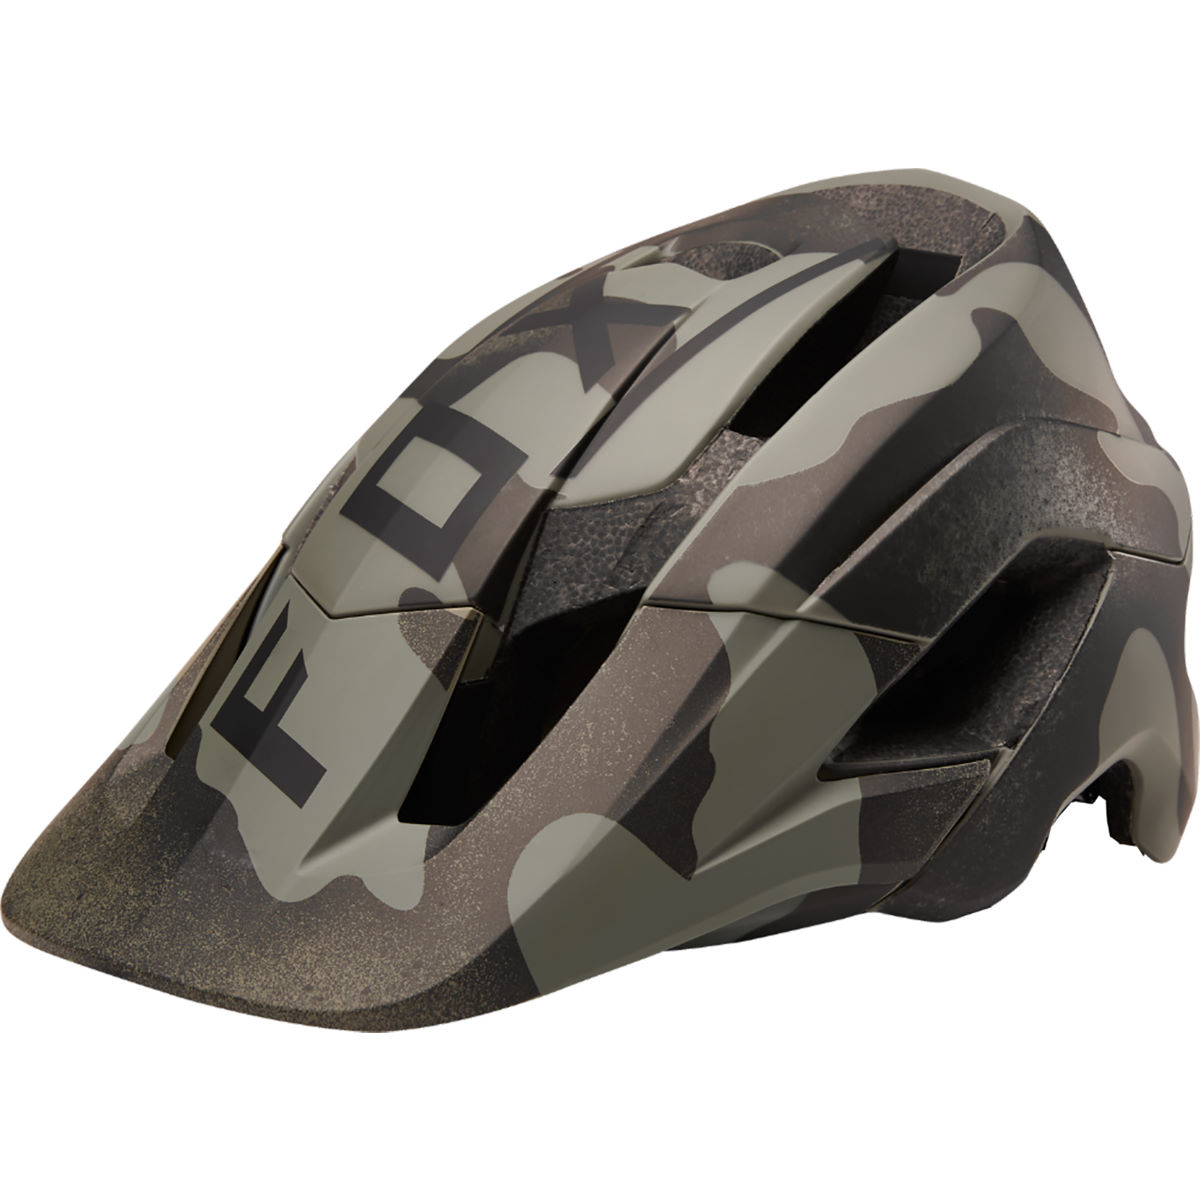 Casque Fox Racing Metah Camo - XS/S Green Camo Casques VTT